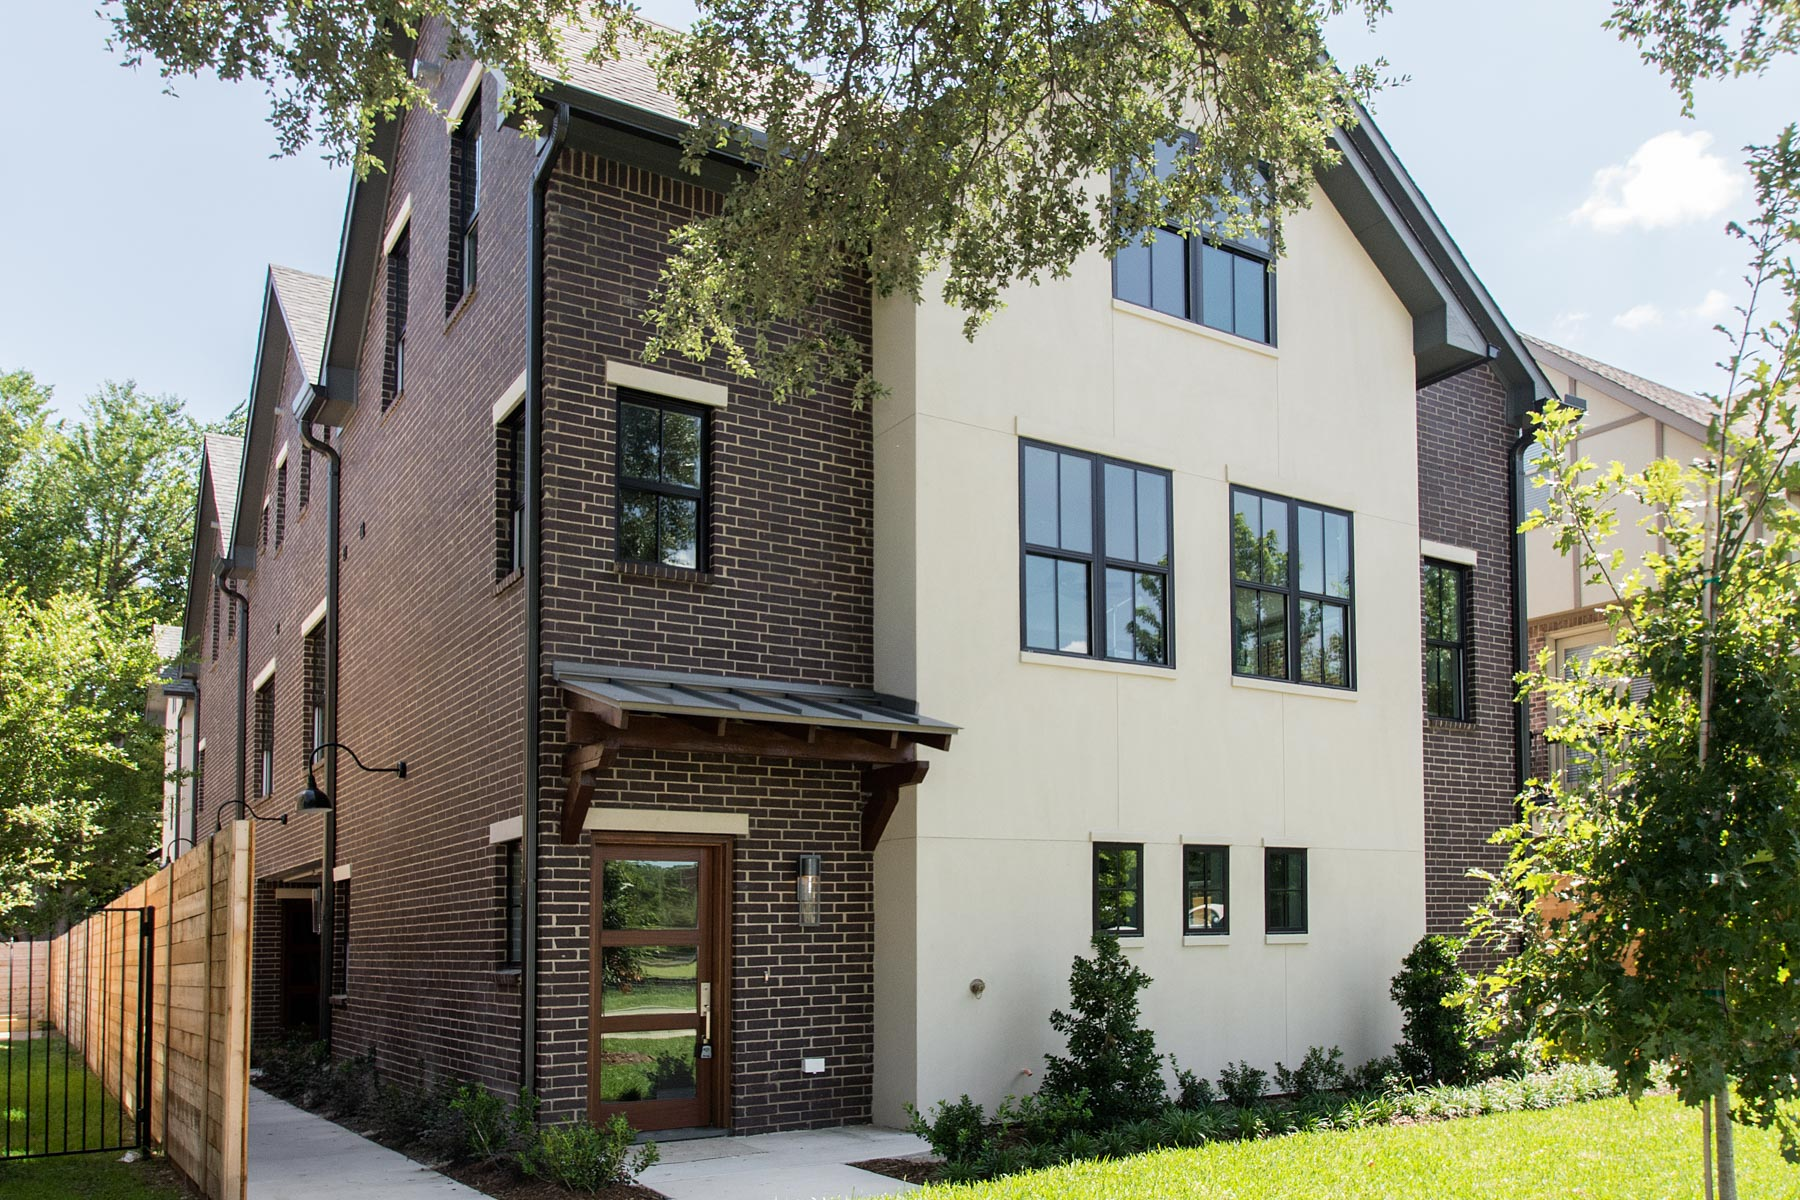 Casa Unifamiliar por un Venta en 3-Story Contemporary New Construction 4121 Grassmere Ln 3 Dallas, Texas, 75205 Estados Unidos